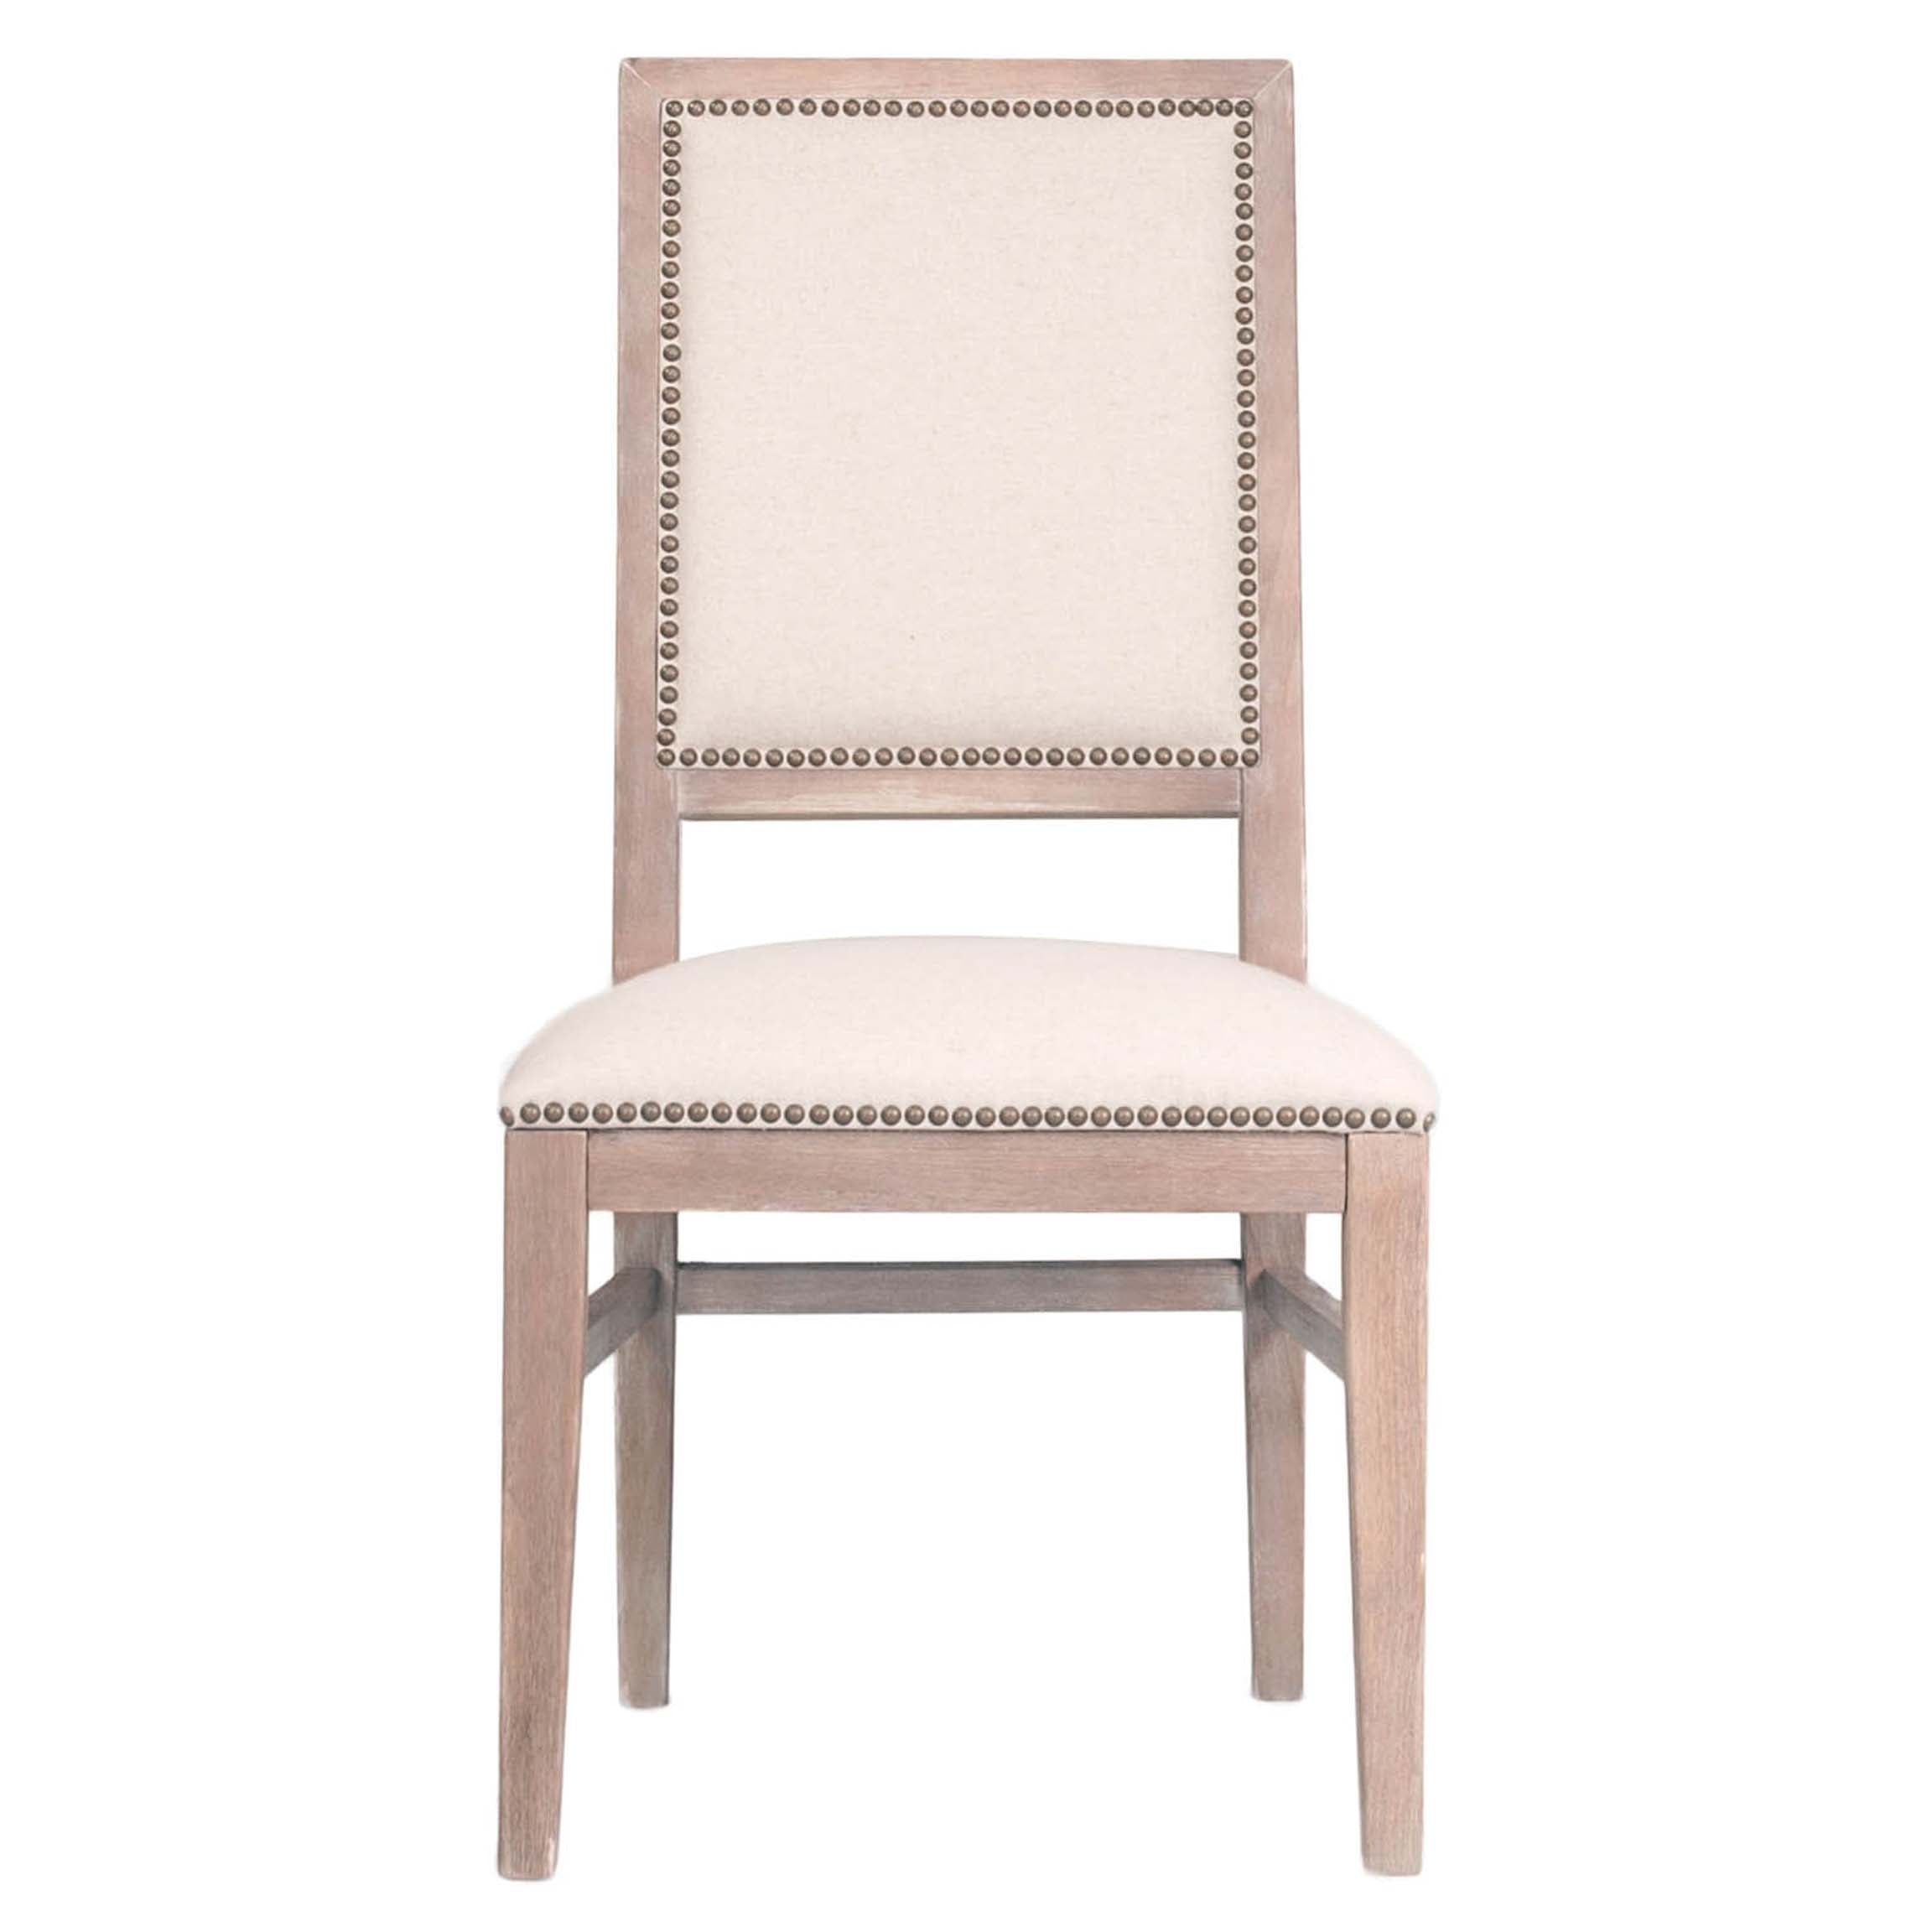 Dexter Dining Chair in Stone Wash (set of 2)